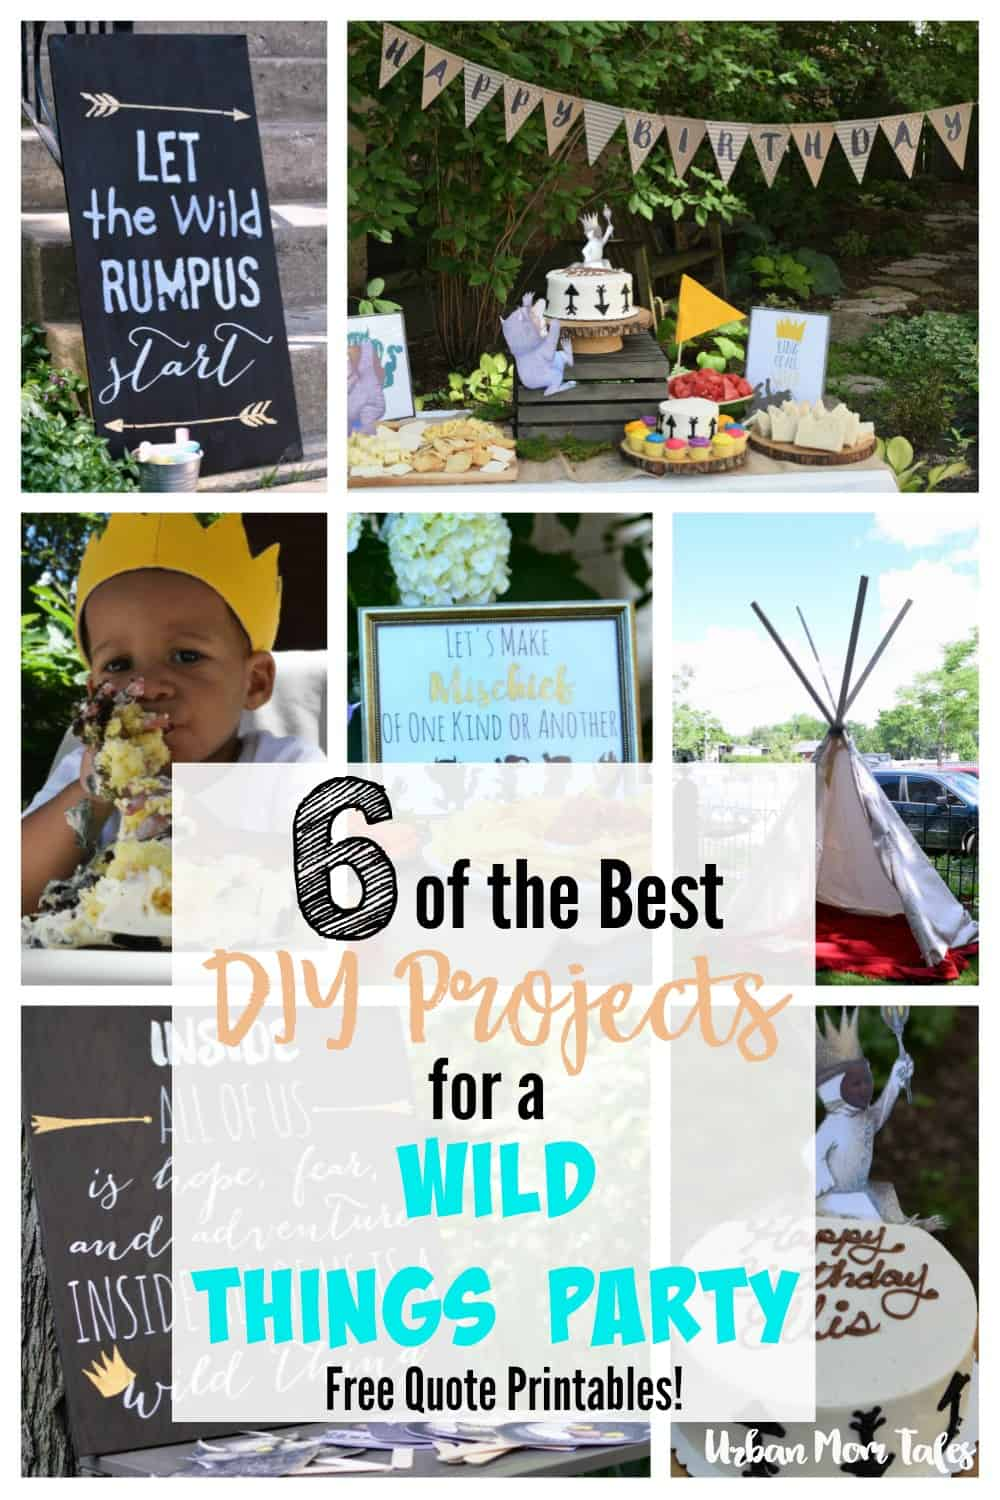 6 of the Best DIY Projects for a Wild Things Party